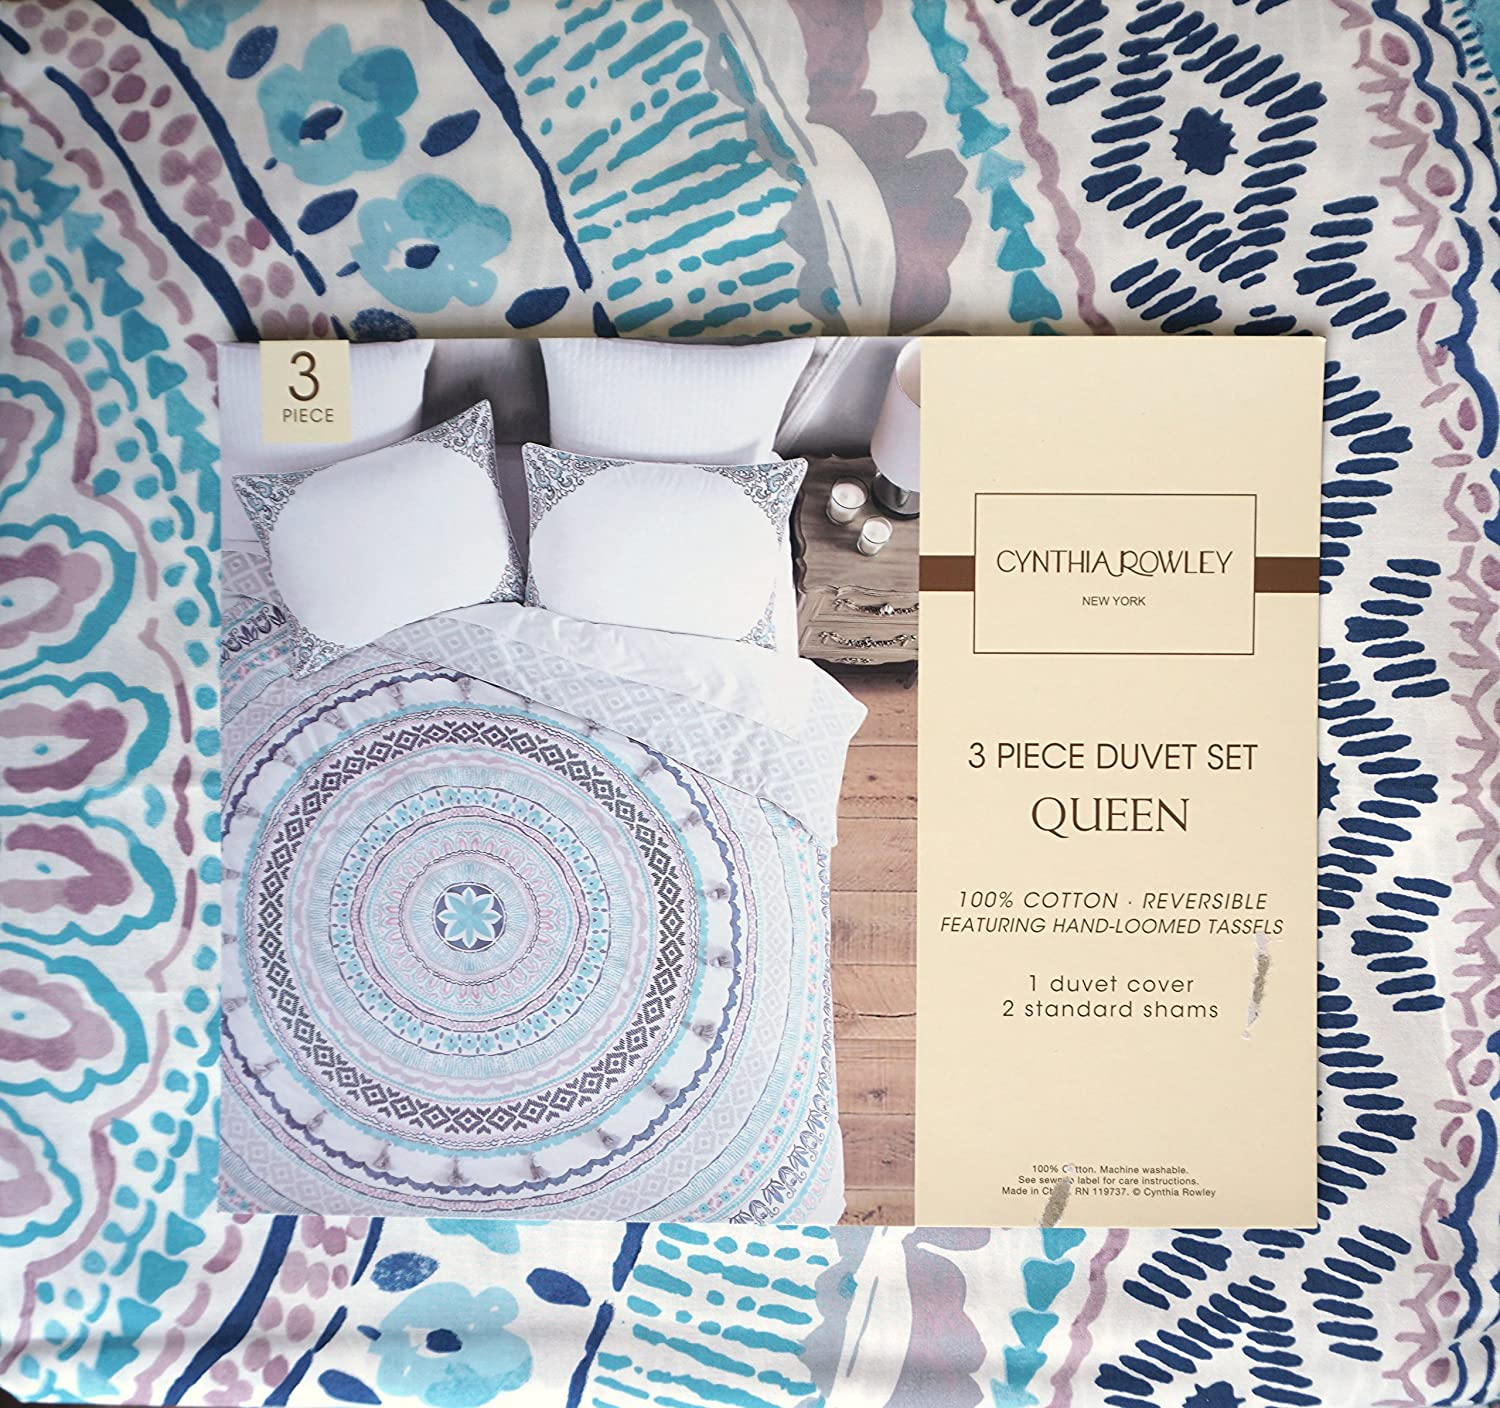 Cynthia Rowley Bedding 3 Piece Queen Size Bed Duvet Cover Set Round Geometric Medallion Pattern in Shades of Gray Purple Blue on White with Gray Tassels